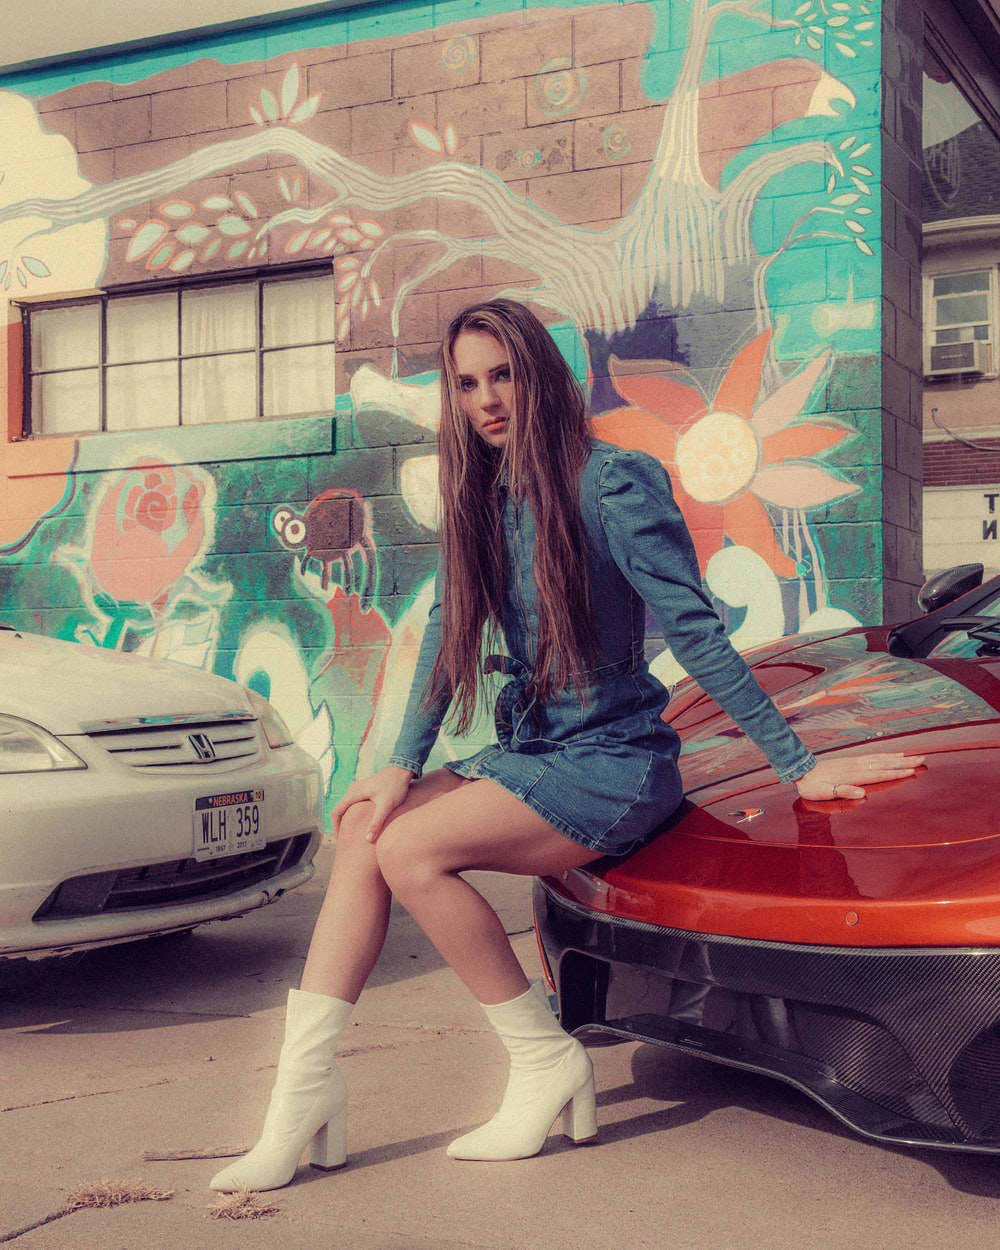 woman in blue long sleeve shirt and blue denim shorts sitting on red car